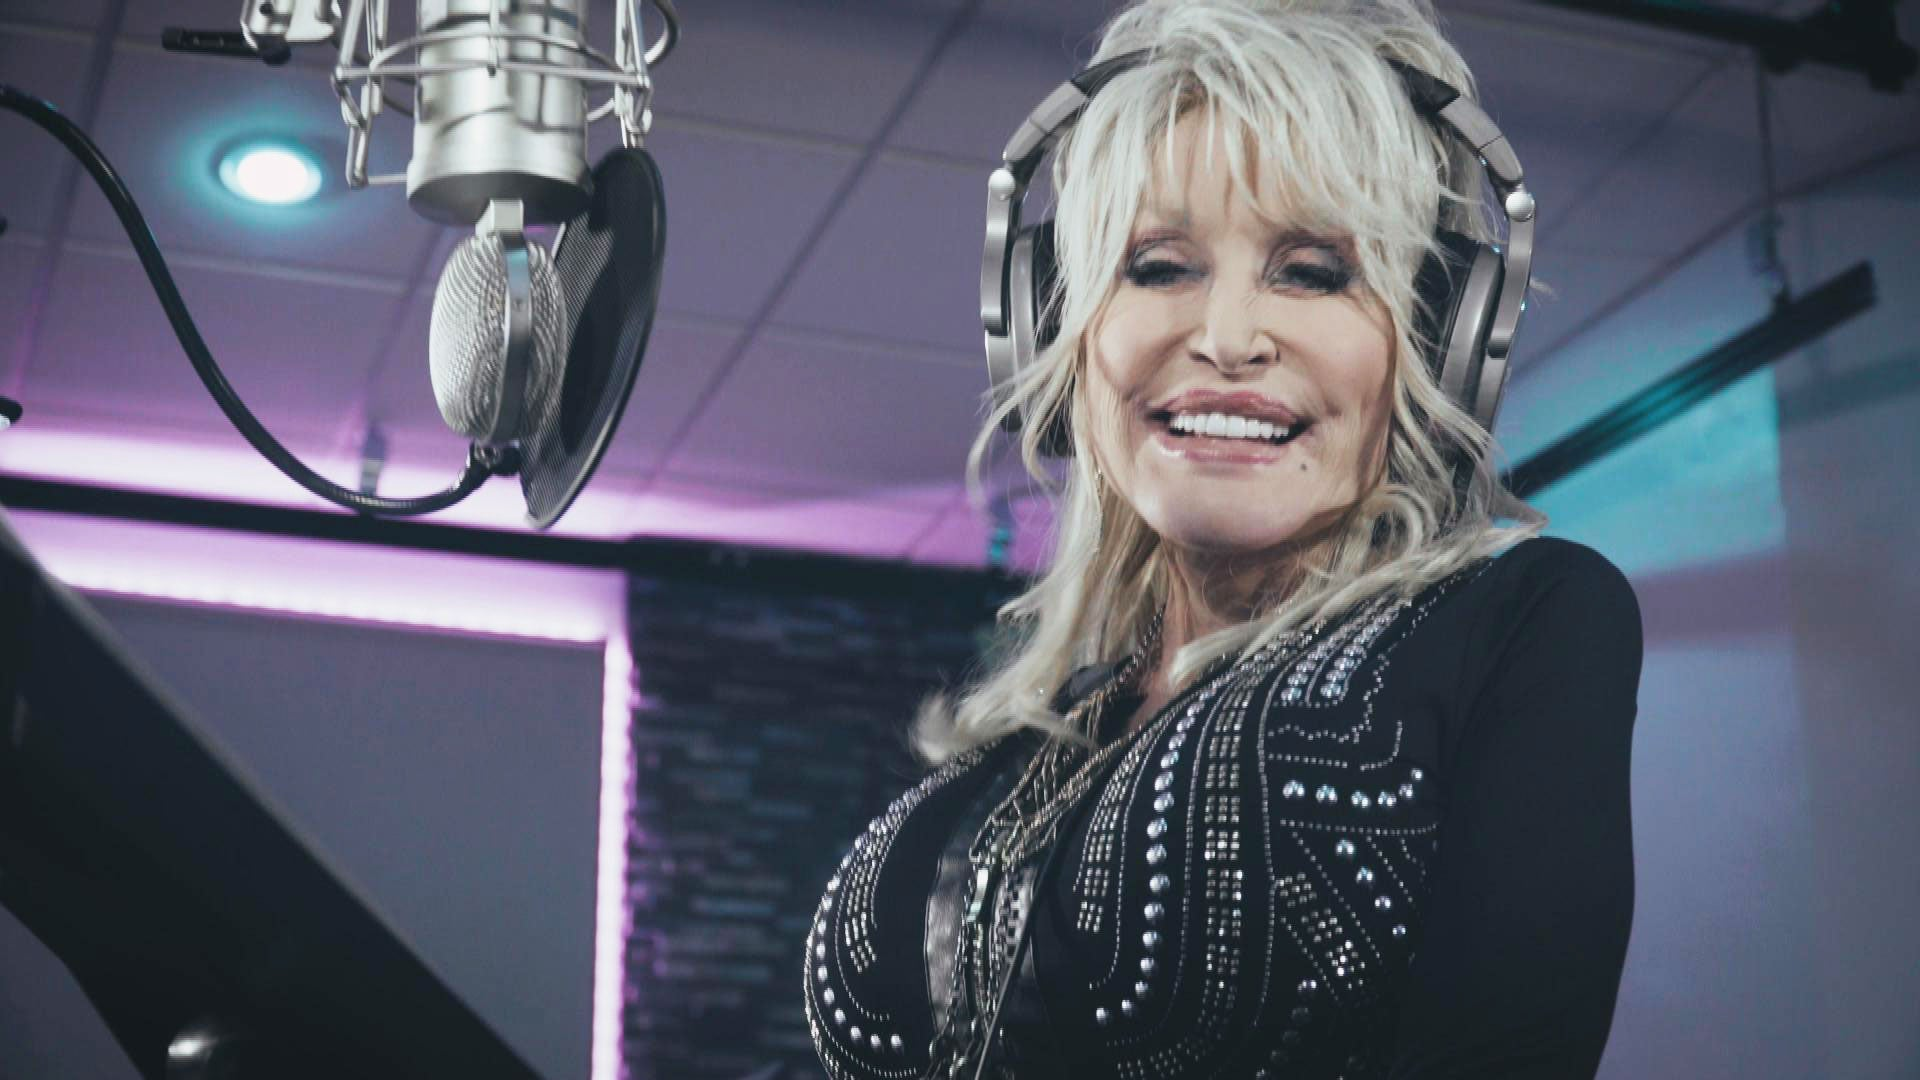 Watch Dolly Parton Perform With Australian Christian Rock Duo in New Music Video (Exclusive)